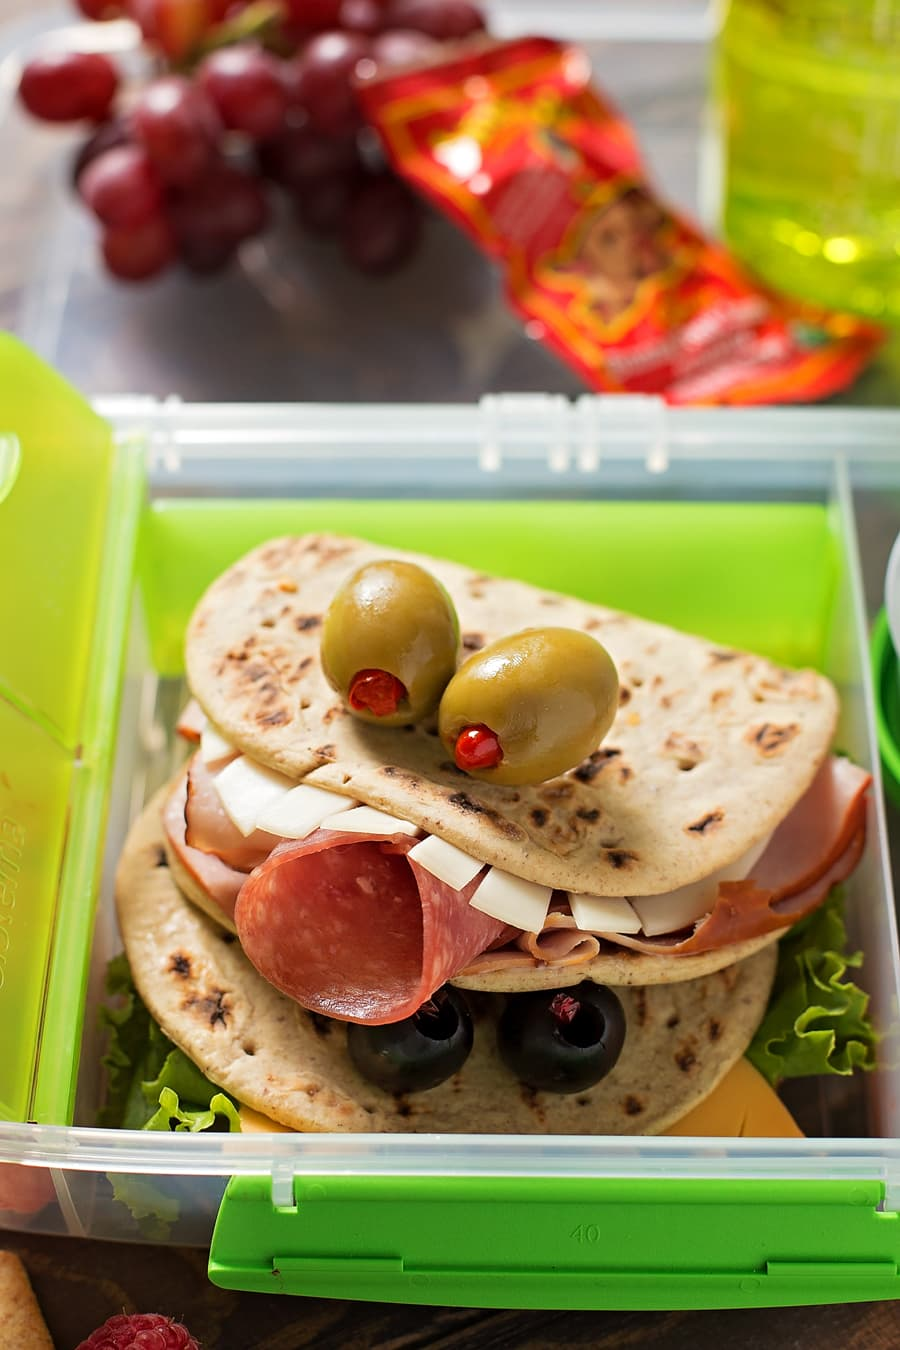 Fun and delicious Flatbread Monster sandwiches! Fill with your favorite meats, cheese and veggies and they're a hit with the entire family.